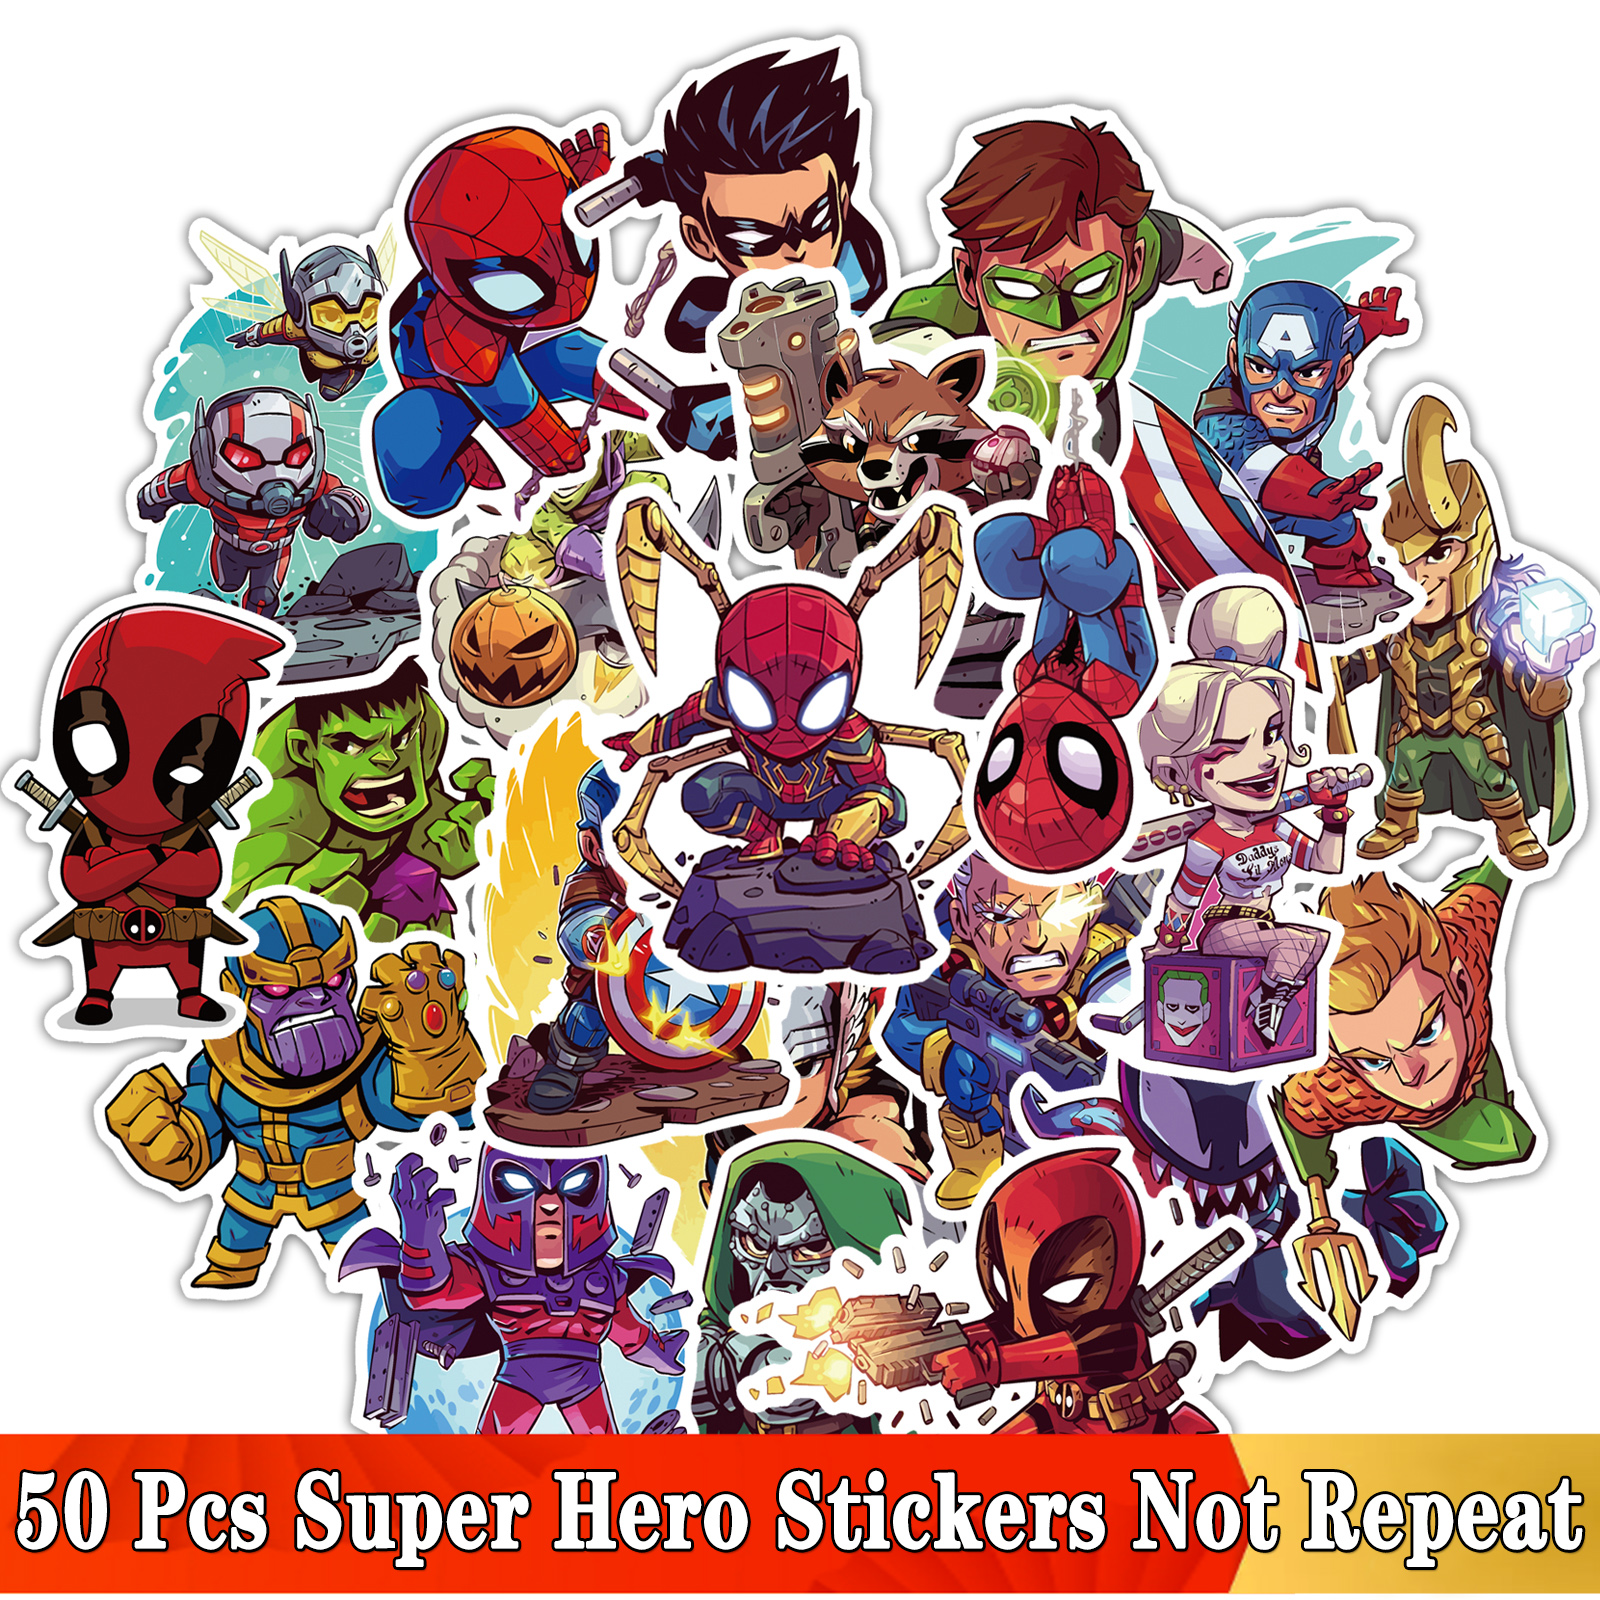 50 Pcs/Lot Cartoon Super Hero Stickers For MARVEL JDM Graffiti Sticker For Laptop Moto Skateboard Luggage Guitar Furnitur Decal